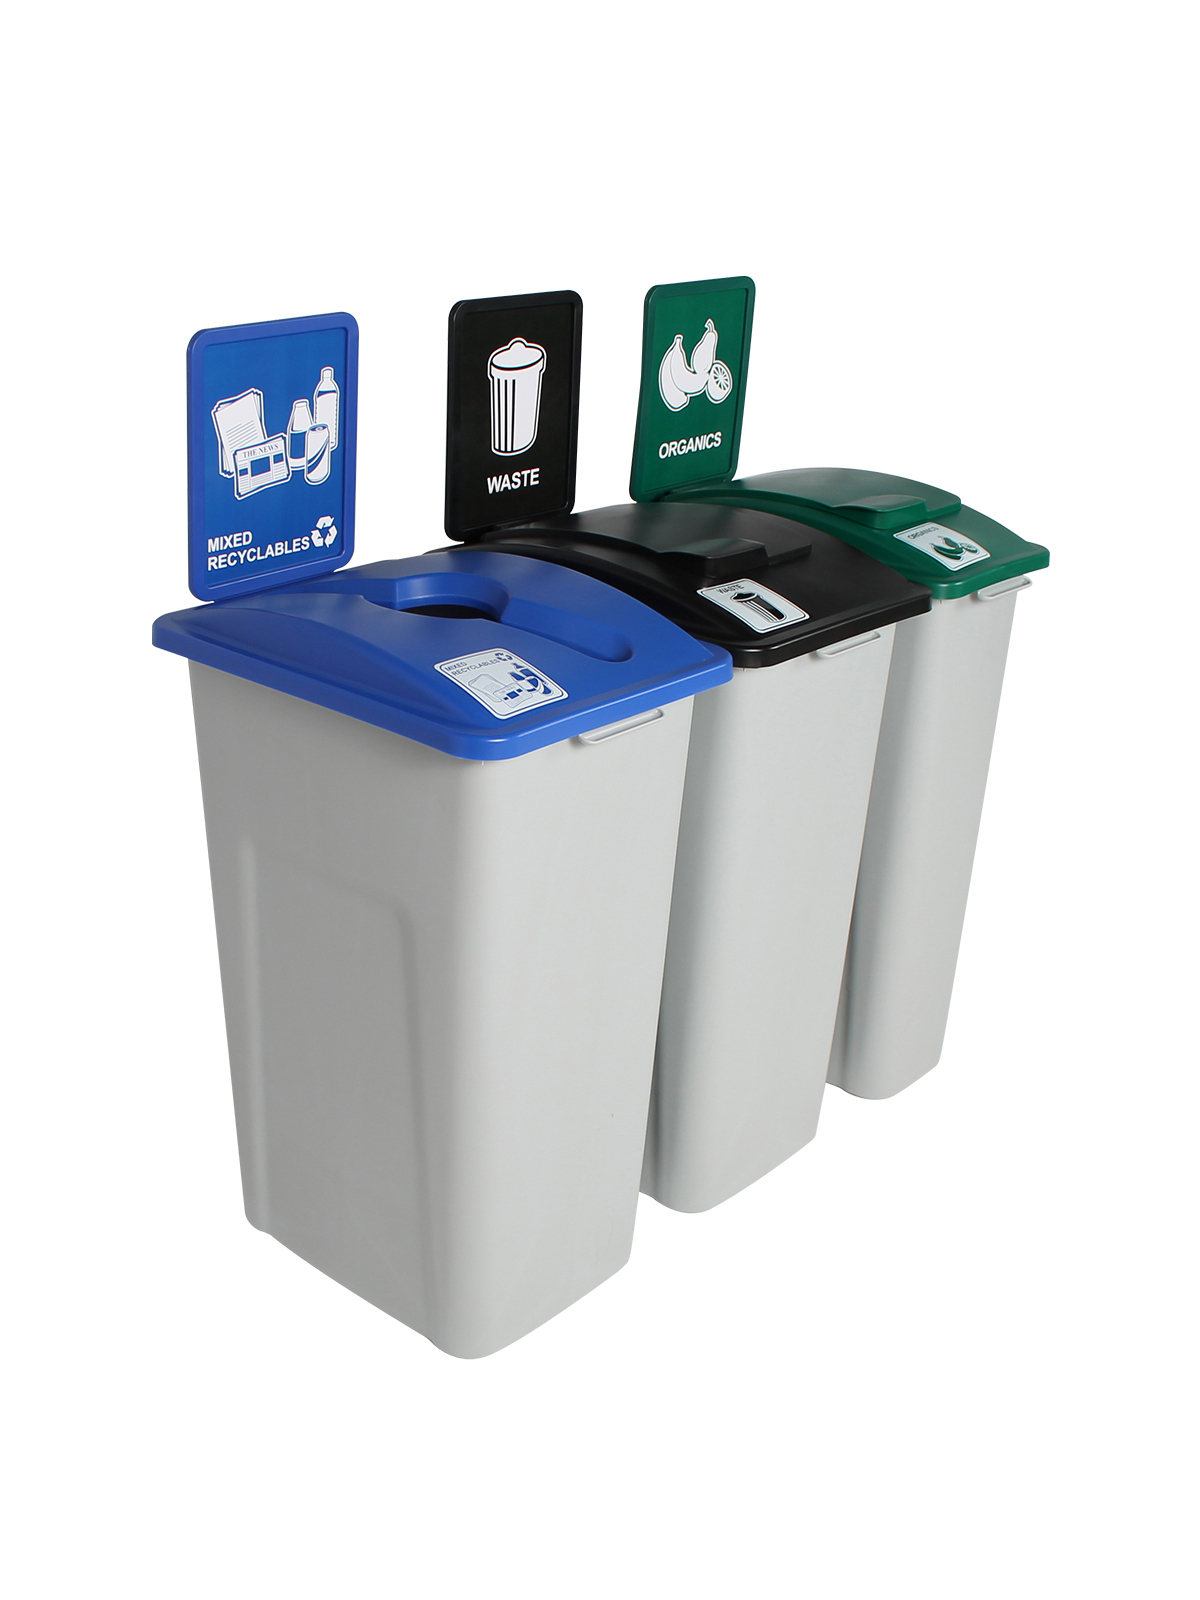 WASTE WATCHER XL - Triple - Mixed Recyclables-Organics-Waste - Mixed-Solid Lift-Solid Lift - Grey-Blue-Green-Black